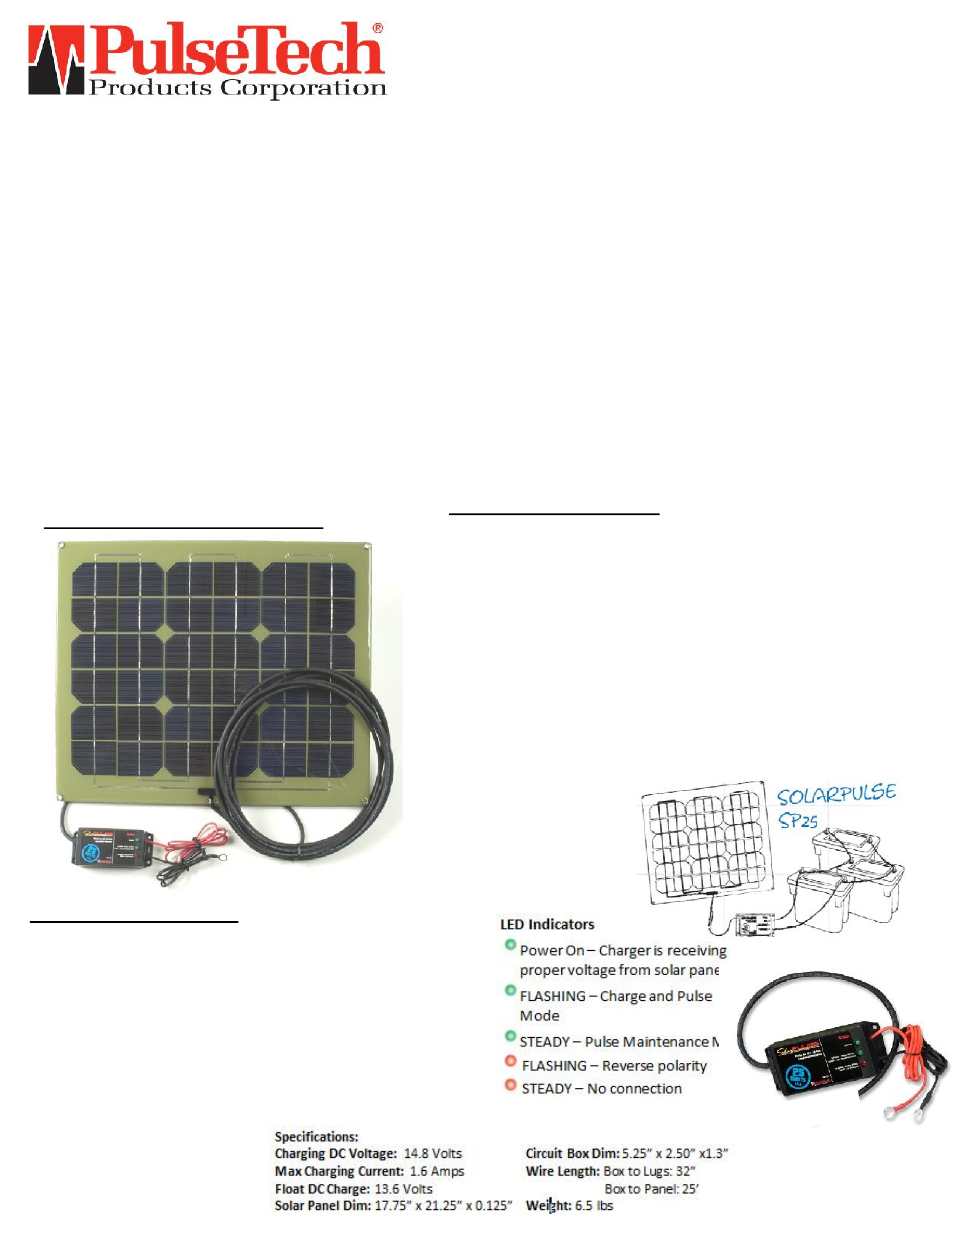 Pulsetech Sp 25 12v Solar Battery Charger Maintainer 735x325 User An Automatic Circuit For Sealed Lead Acid Batteries Is Manual 2 Pages